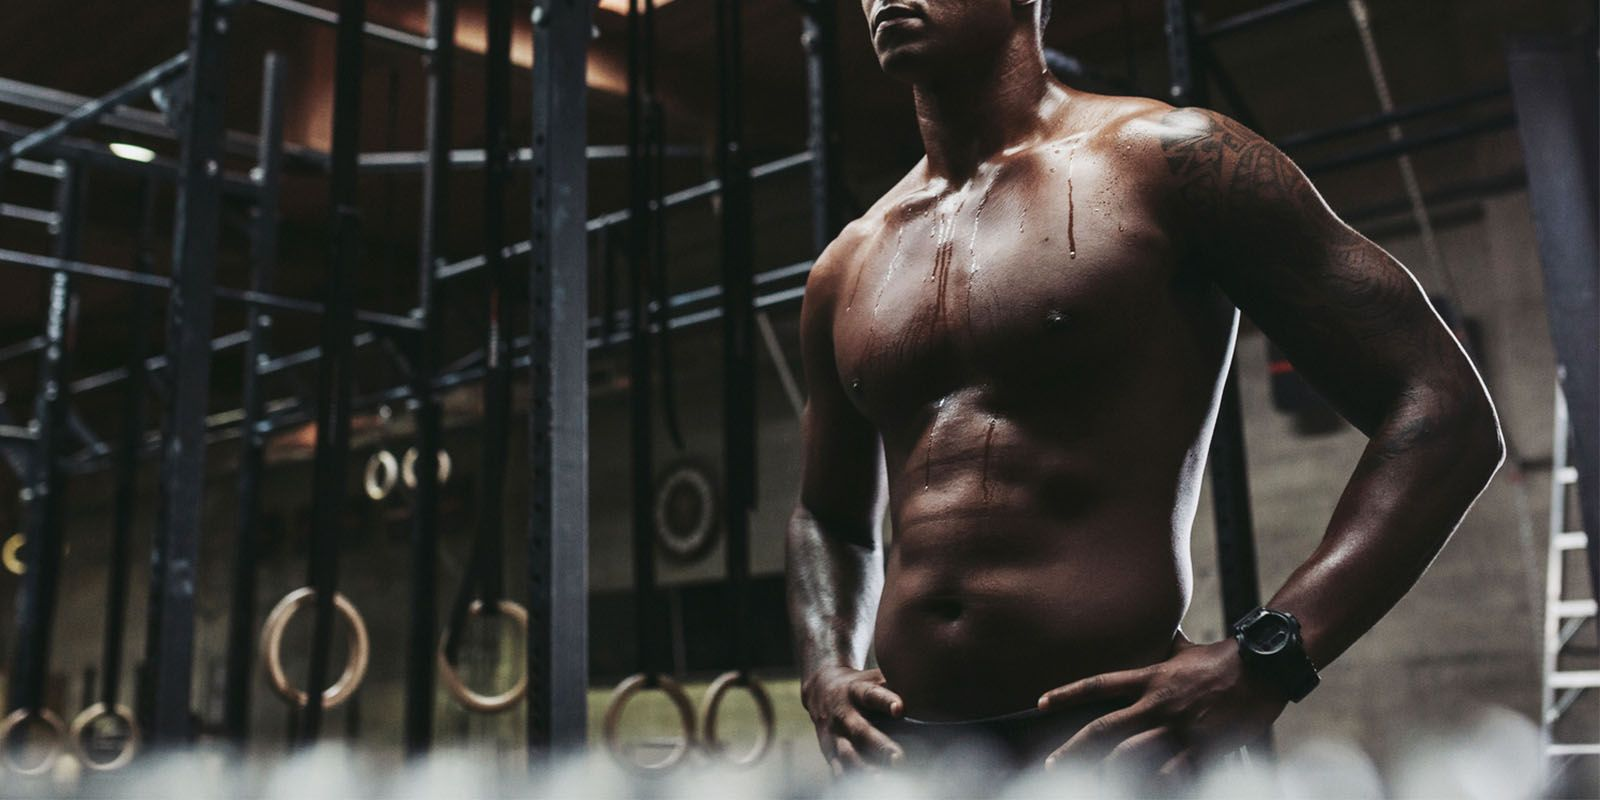 A 5-Step New Year's Workout Plan Any Guy Can Crush